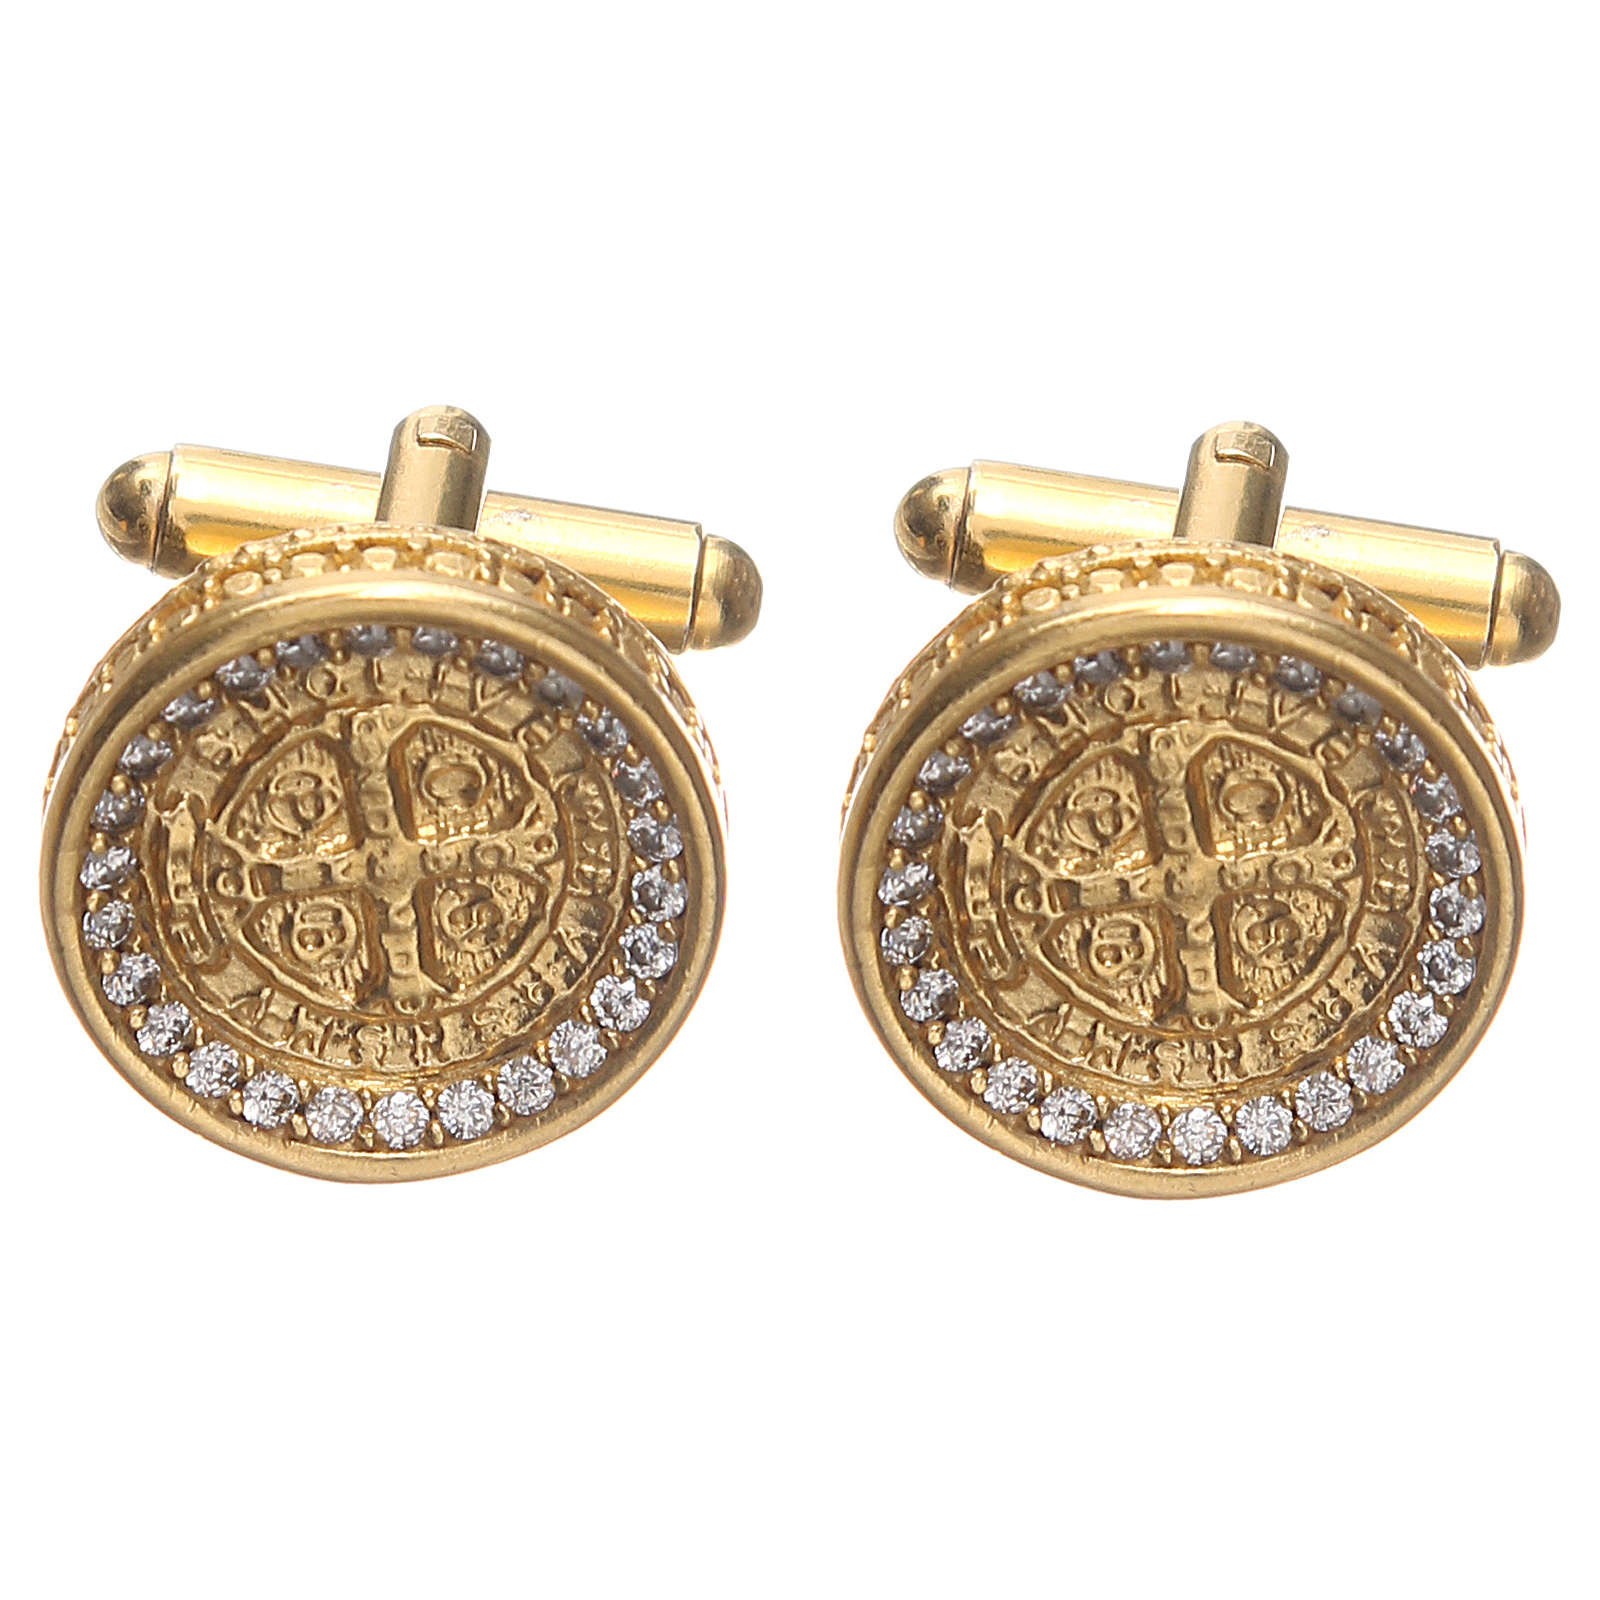 Cufflinks with St Benedict cross in gold plated brass 1,7cm 4